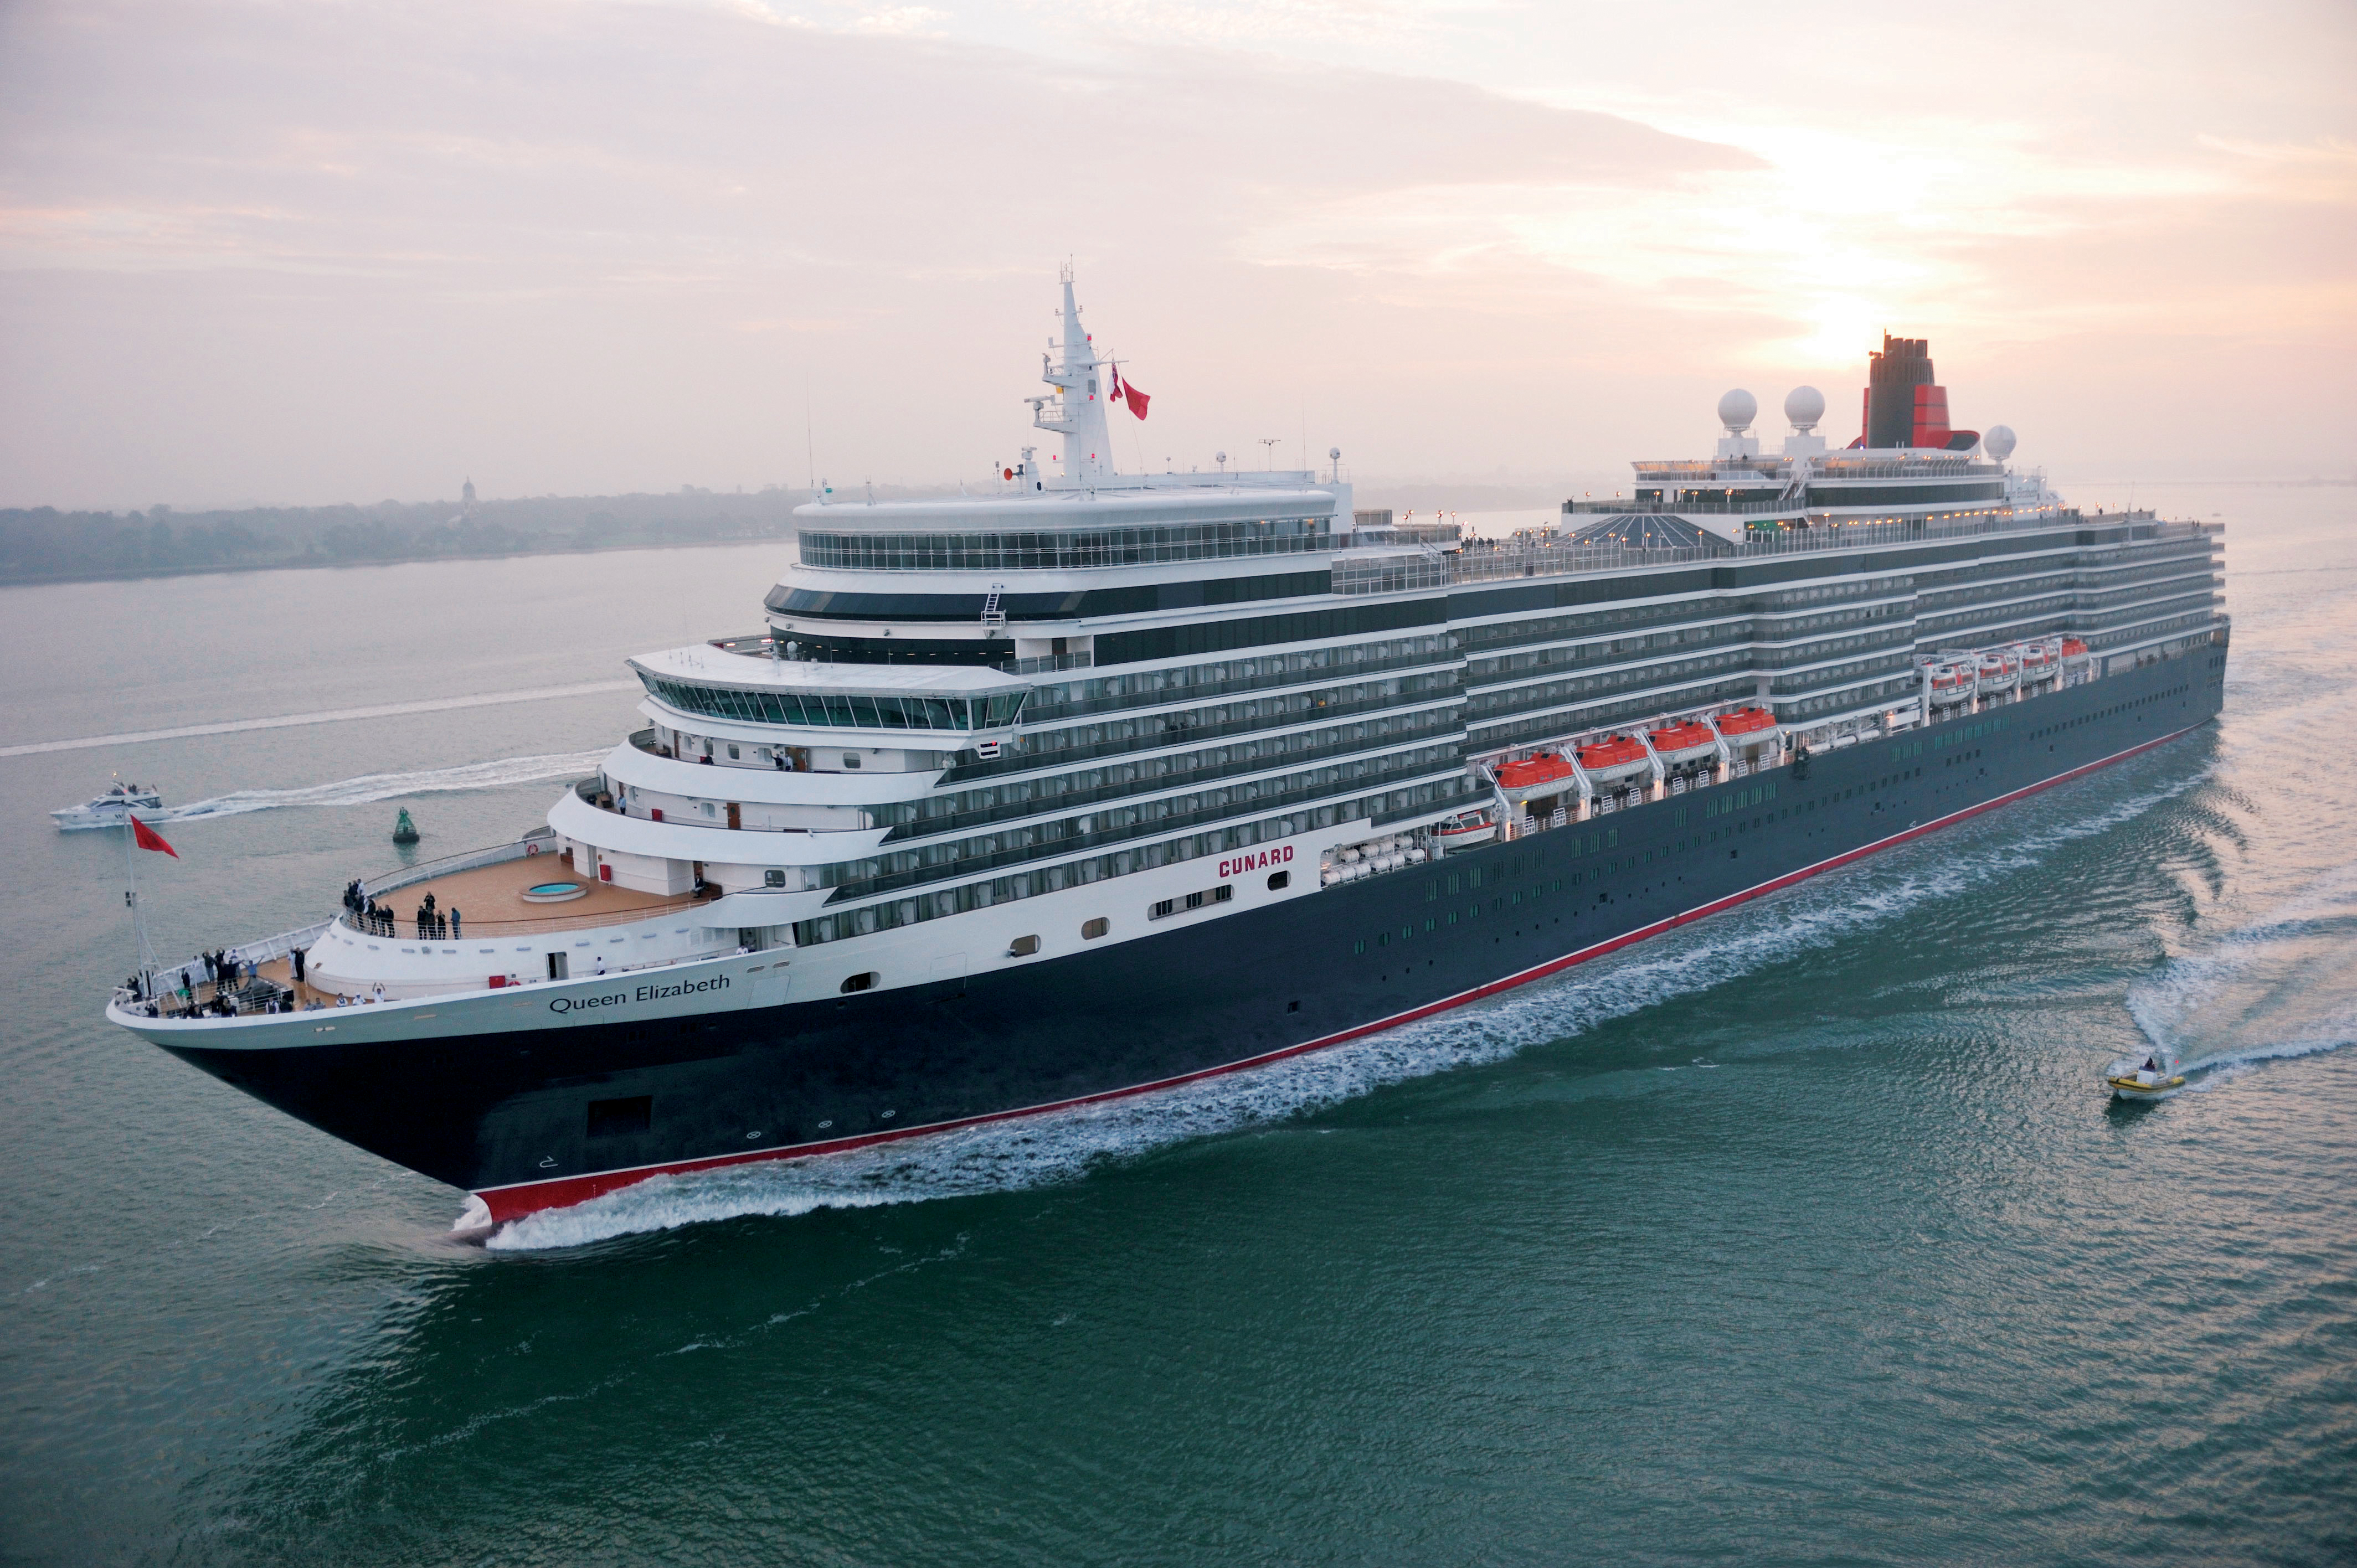 Cruise Ship Focus Queen Elizabeth | CruiseMiss Cruise Blog